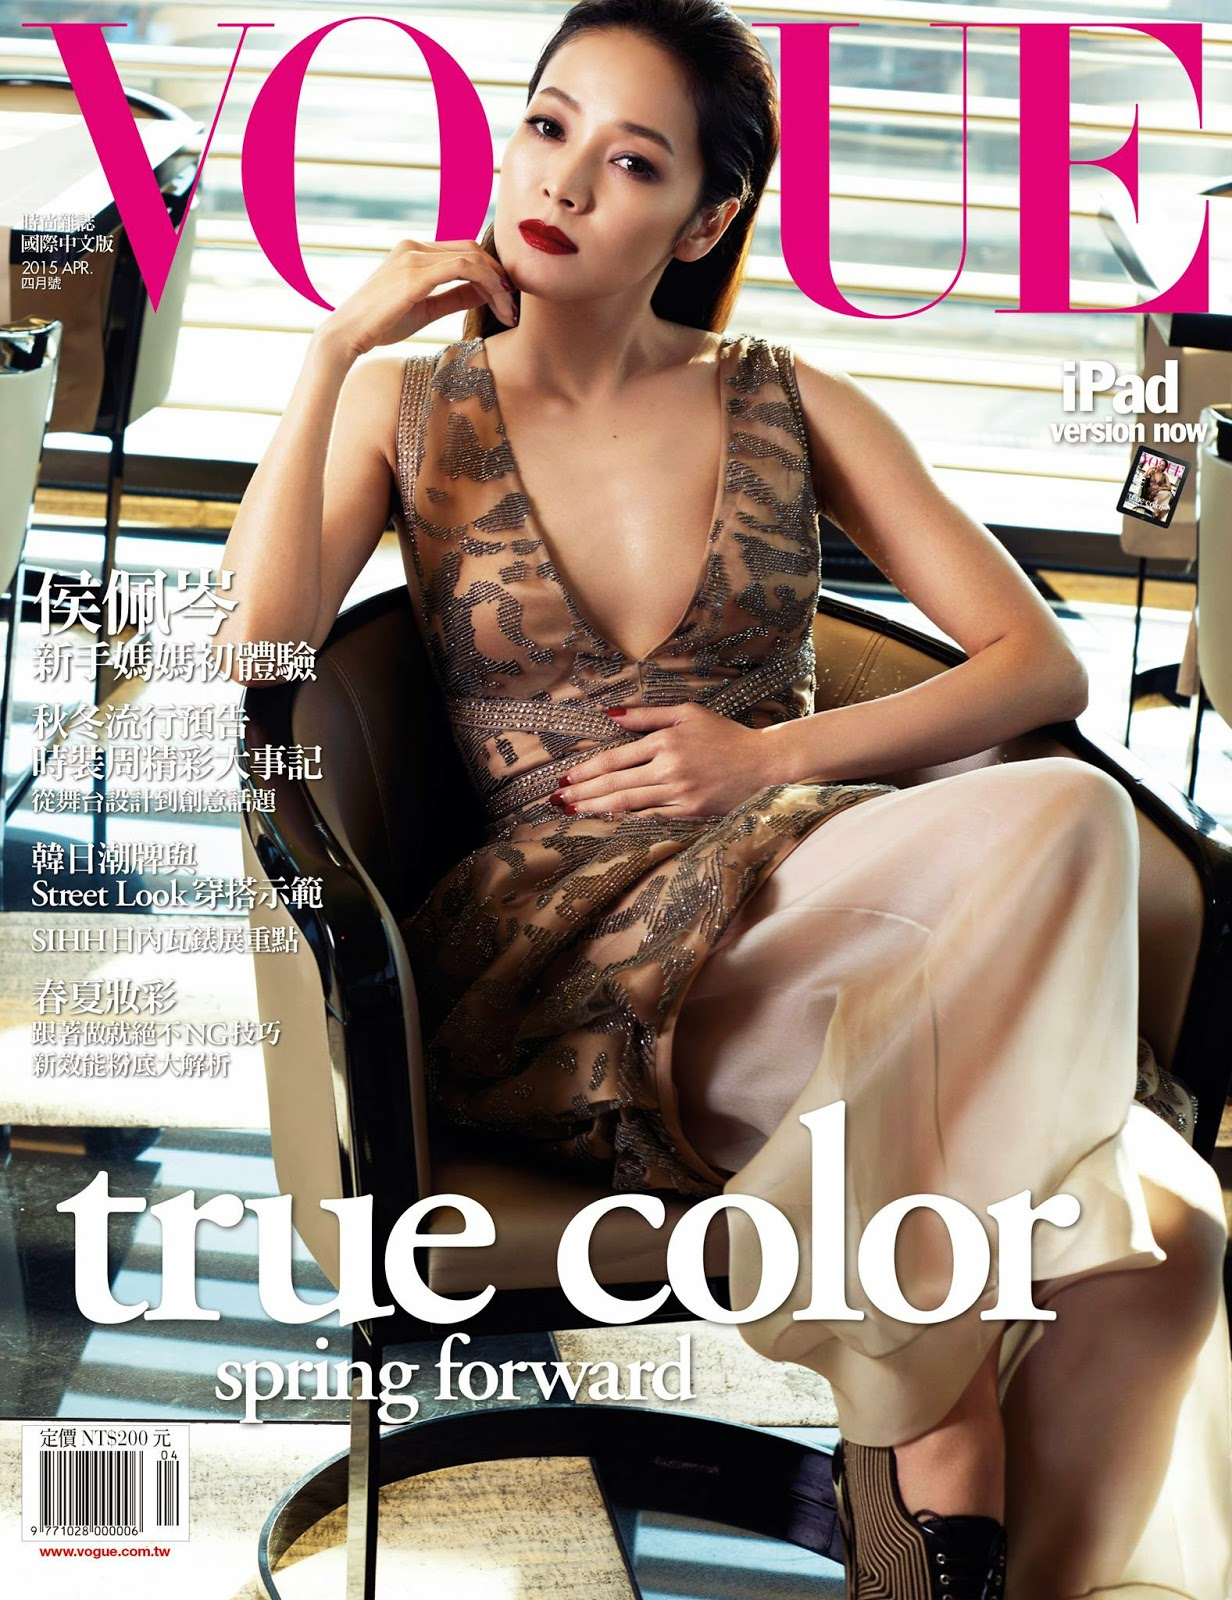 TV Host, News Anchor, Actress @ Patty Hou by Naomi Yang for Vogue Taiwan April 2015